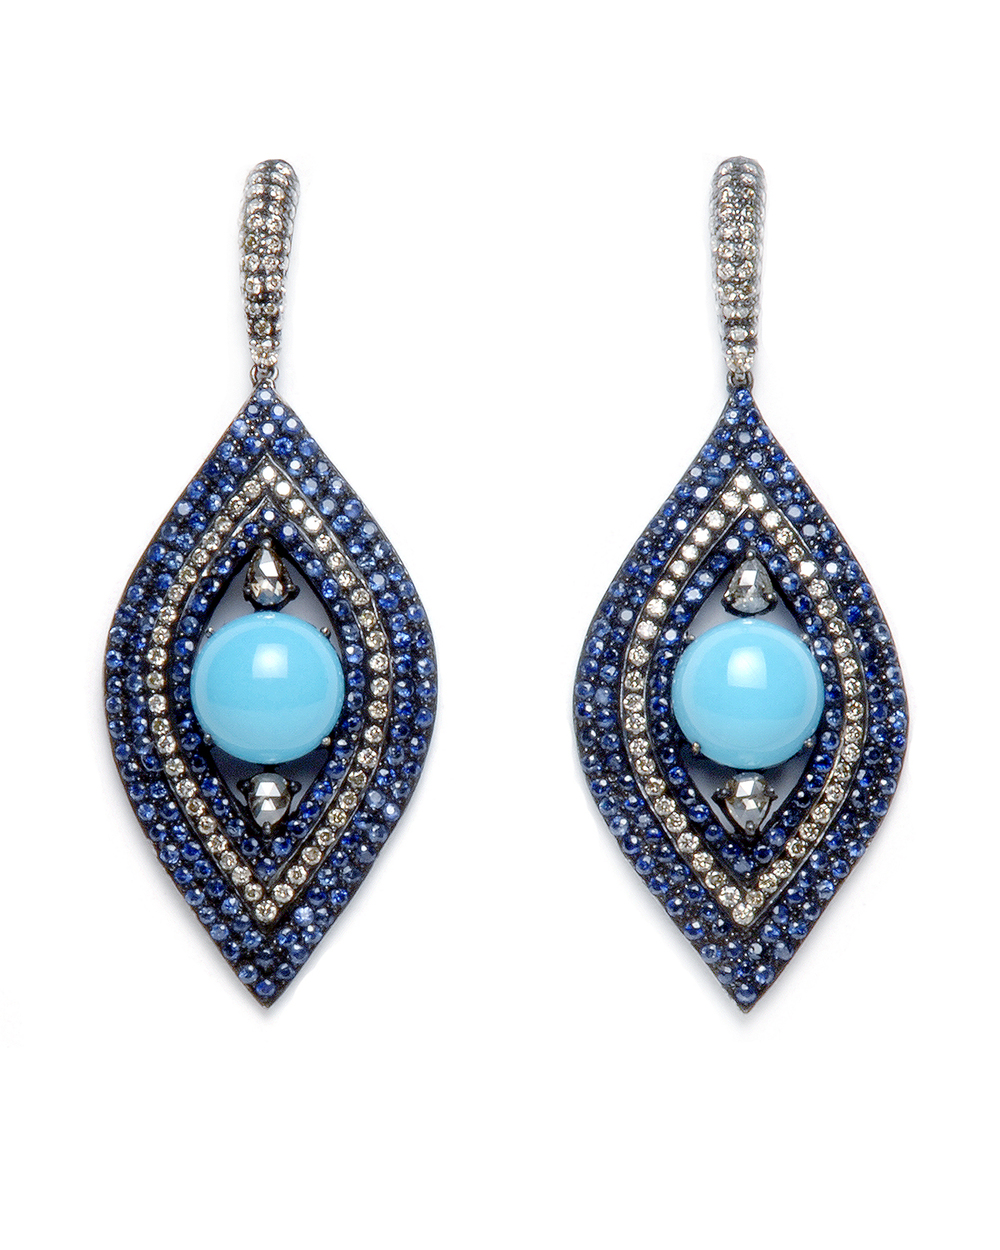 Midnight Sun_earrings_0026_4x5.jpg